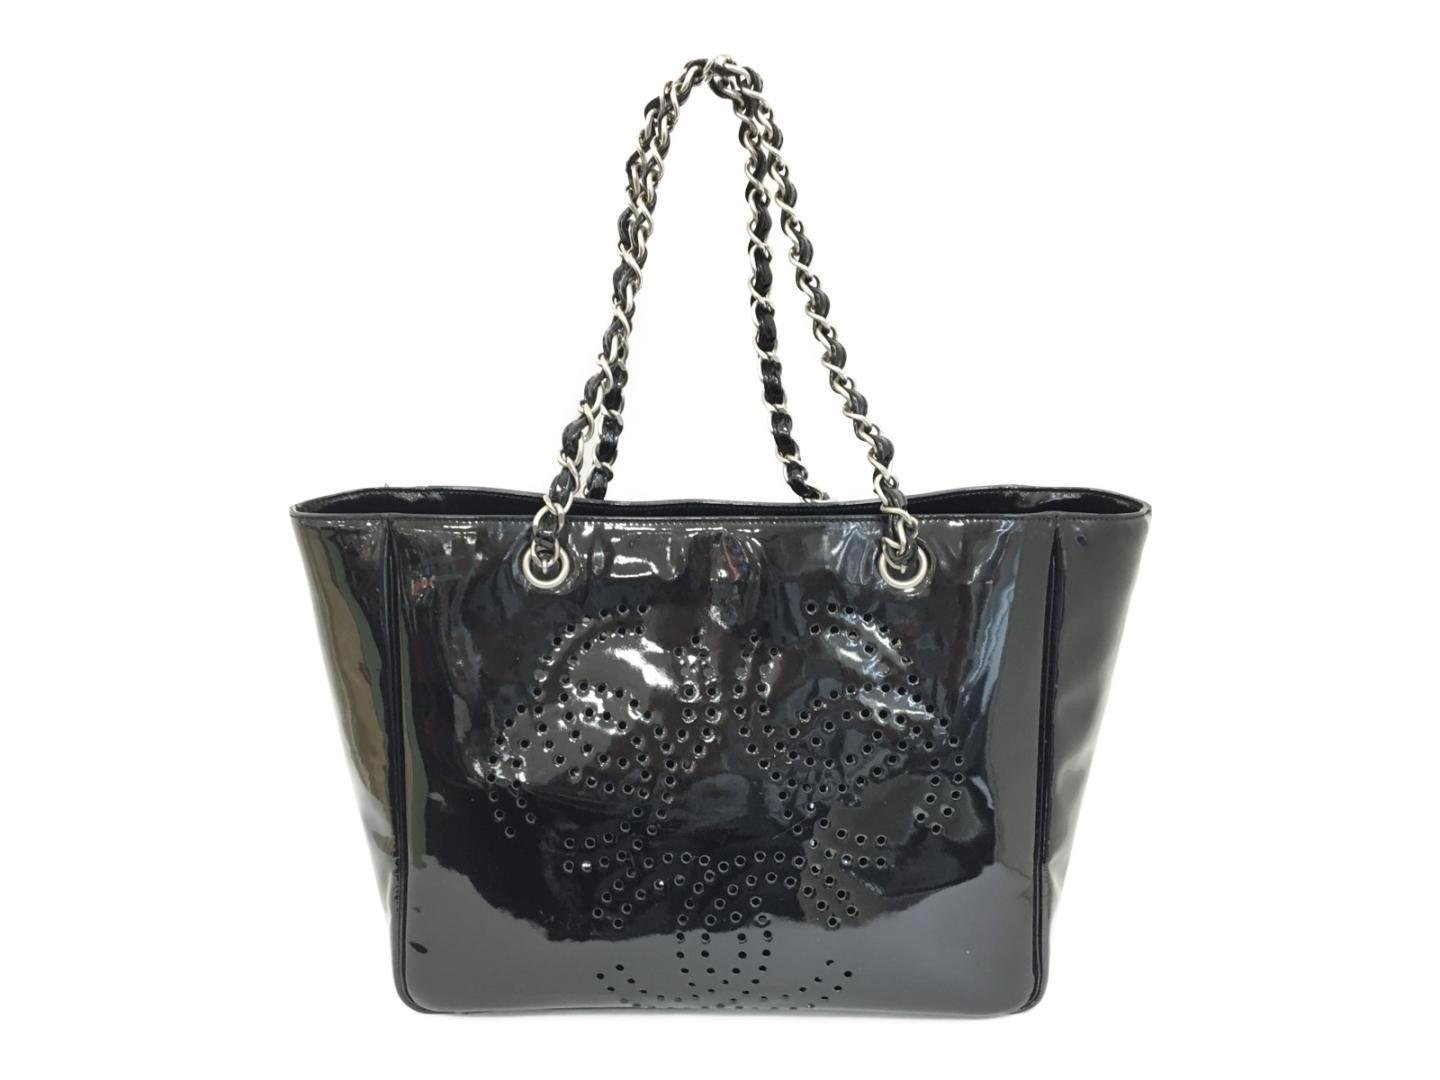 9fa78b62cbc721 Lyst - Chanel Punching Chain Shoulder Tote Bag Black Patent Leather ...